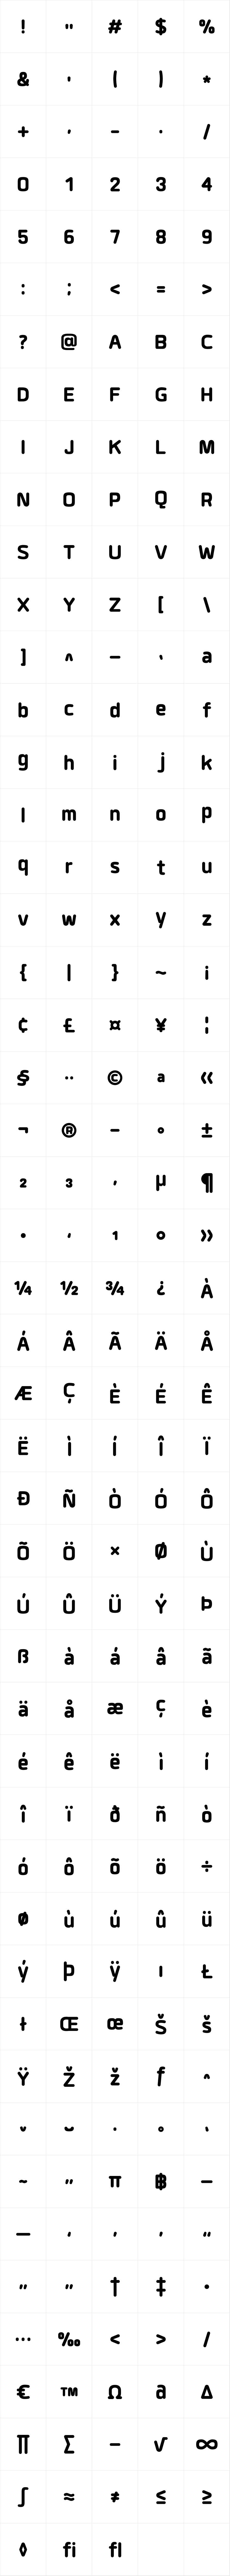 Quan Rounded Extrabold